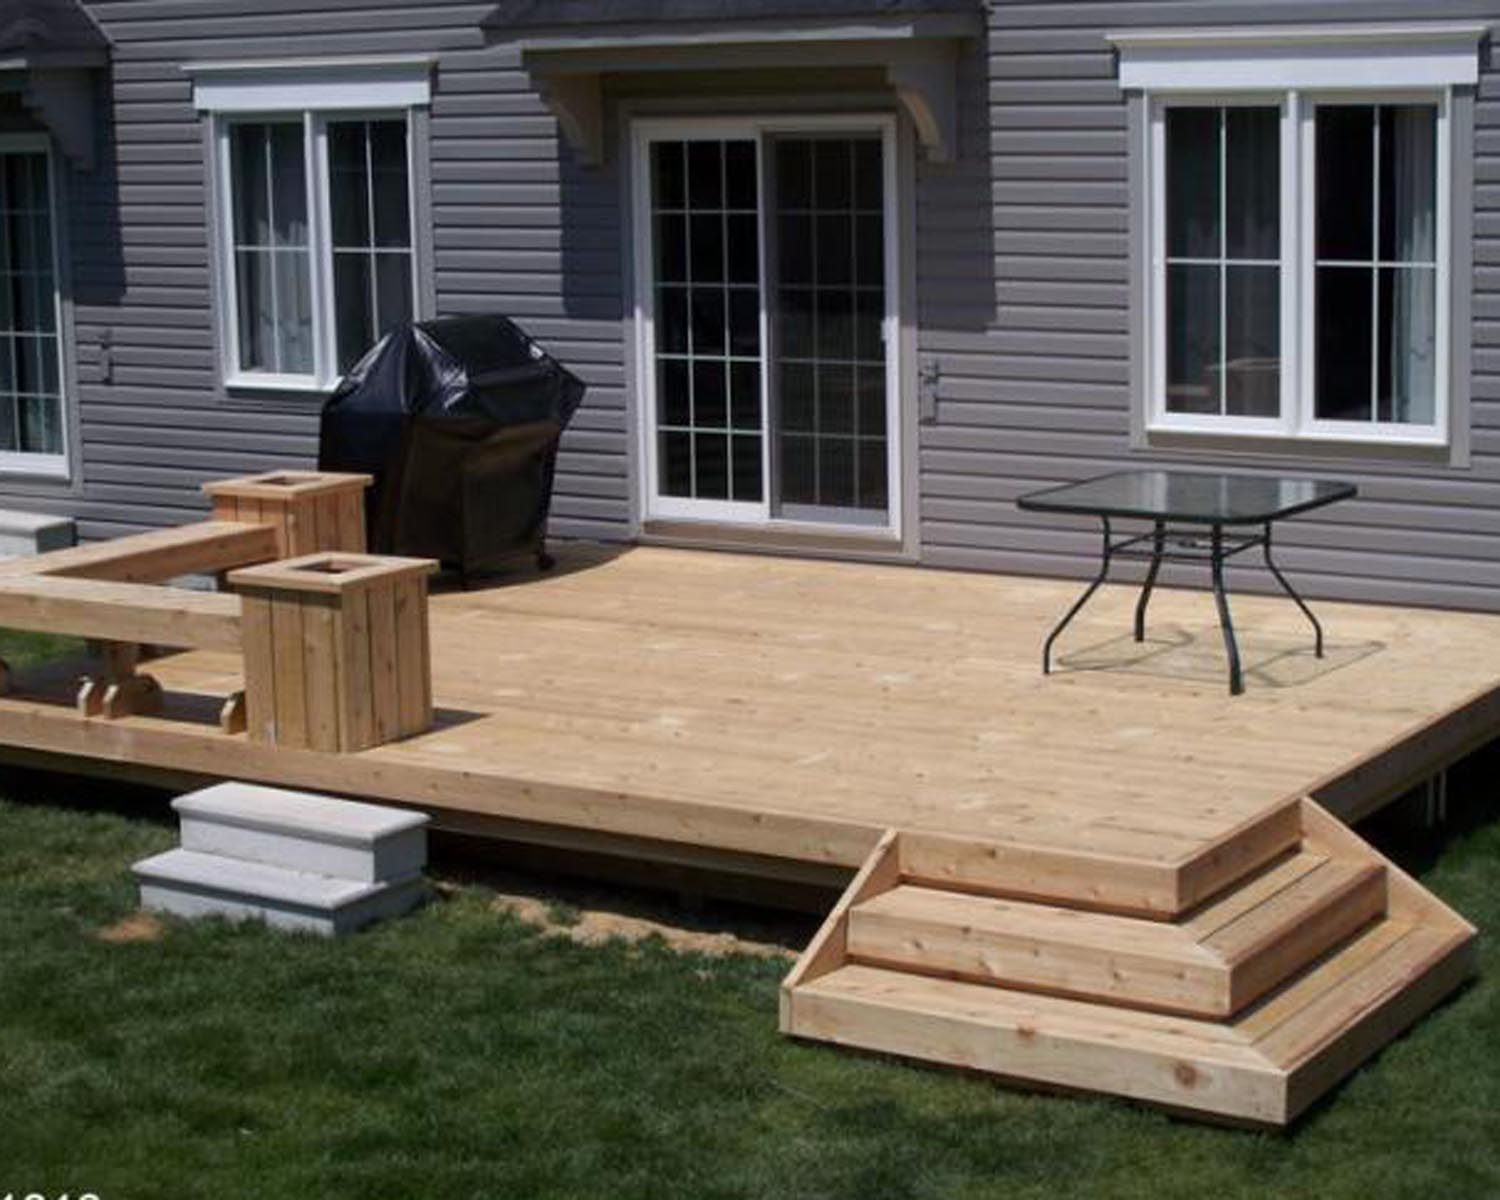 deck ideas be more when deck building simple but functional designs can - Deck Design Ideas